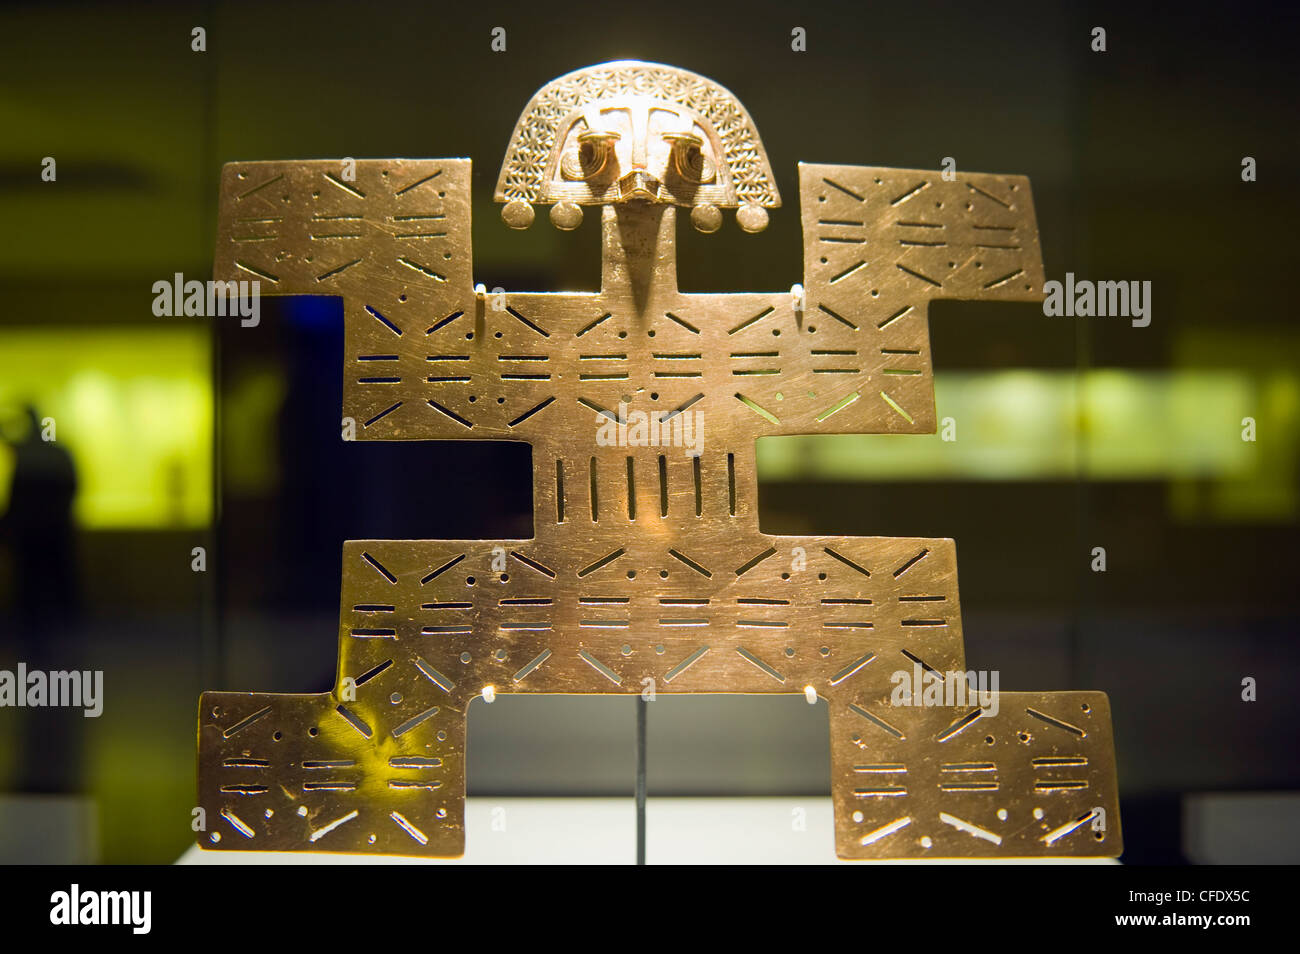 Gold sculpture in the Museo del Oro (Gold Museum), Bogota, South America - Stock Image